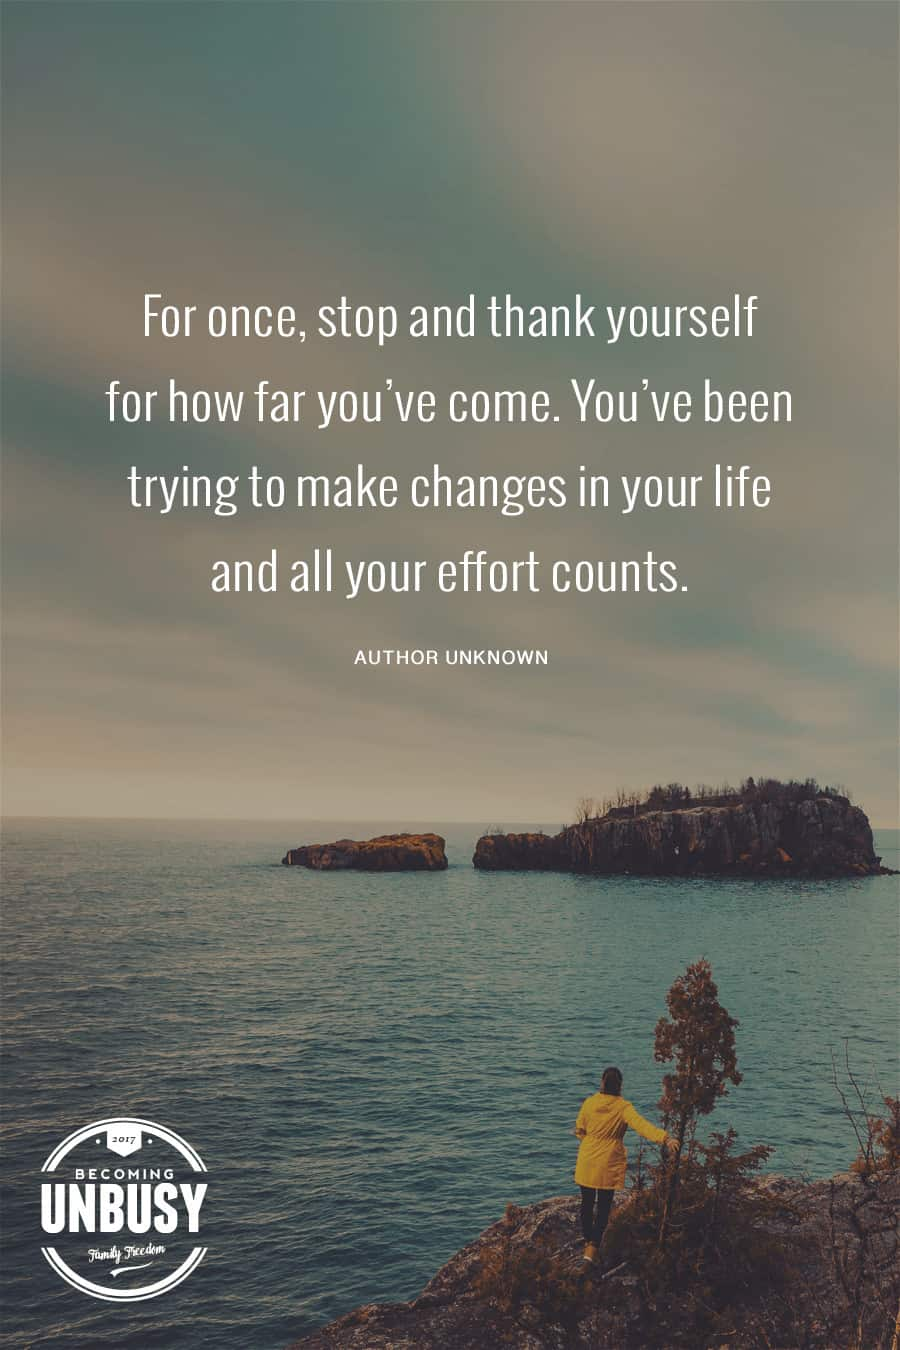 For once, stop and thank yourself for how far you've come. You've been trying to make changes in your life, and all your effort counts. -- 10 inspirational quotes about life that will help you focus on what's important #quotes #lifequotes #inspirationalquotes *Loving this collection of life quotes!